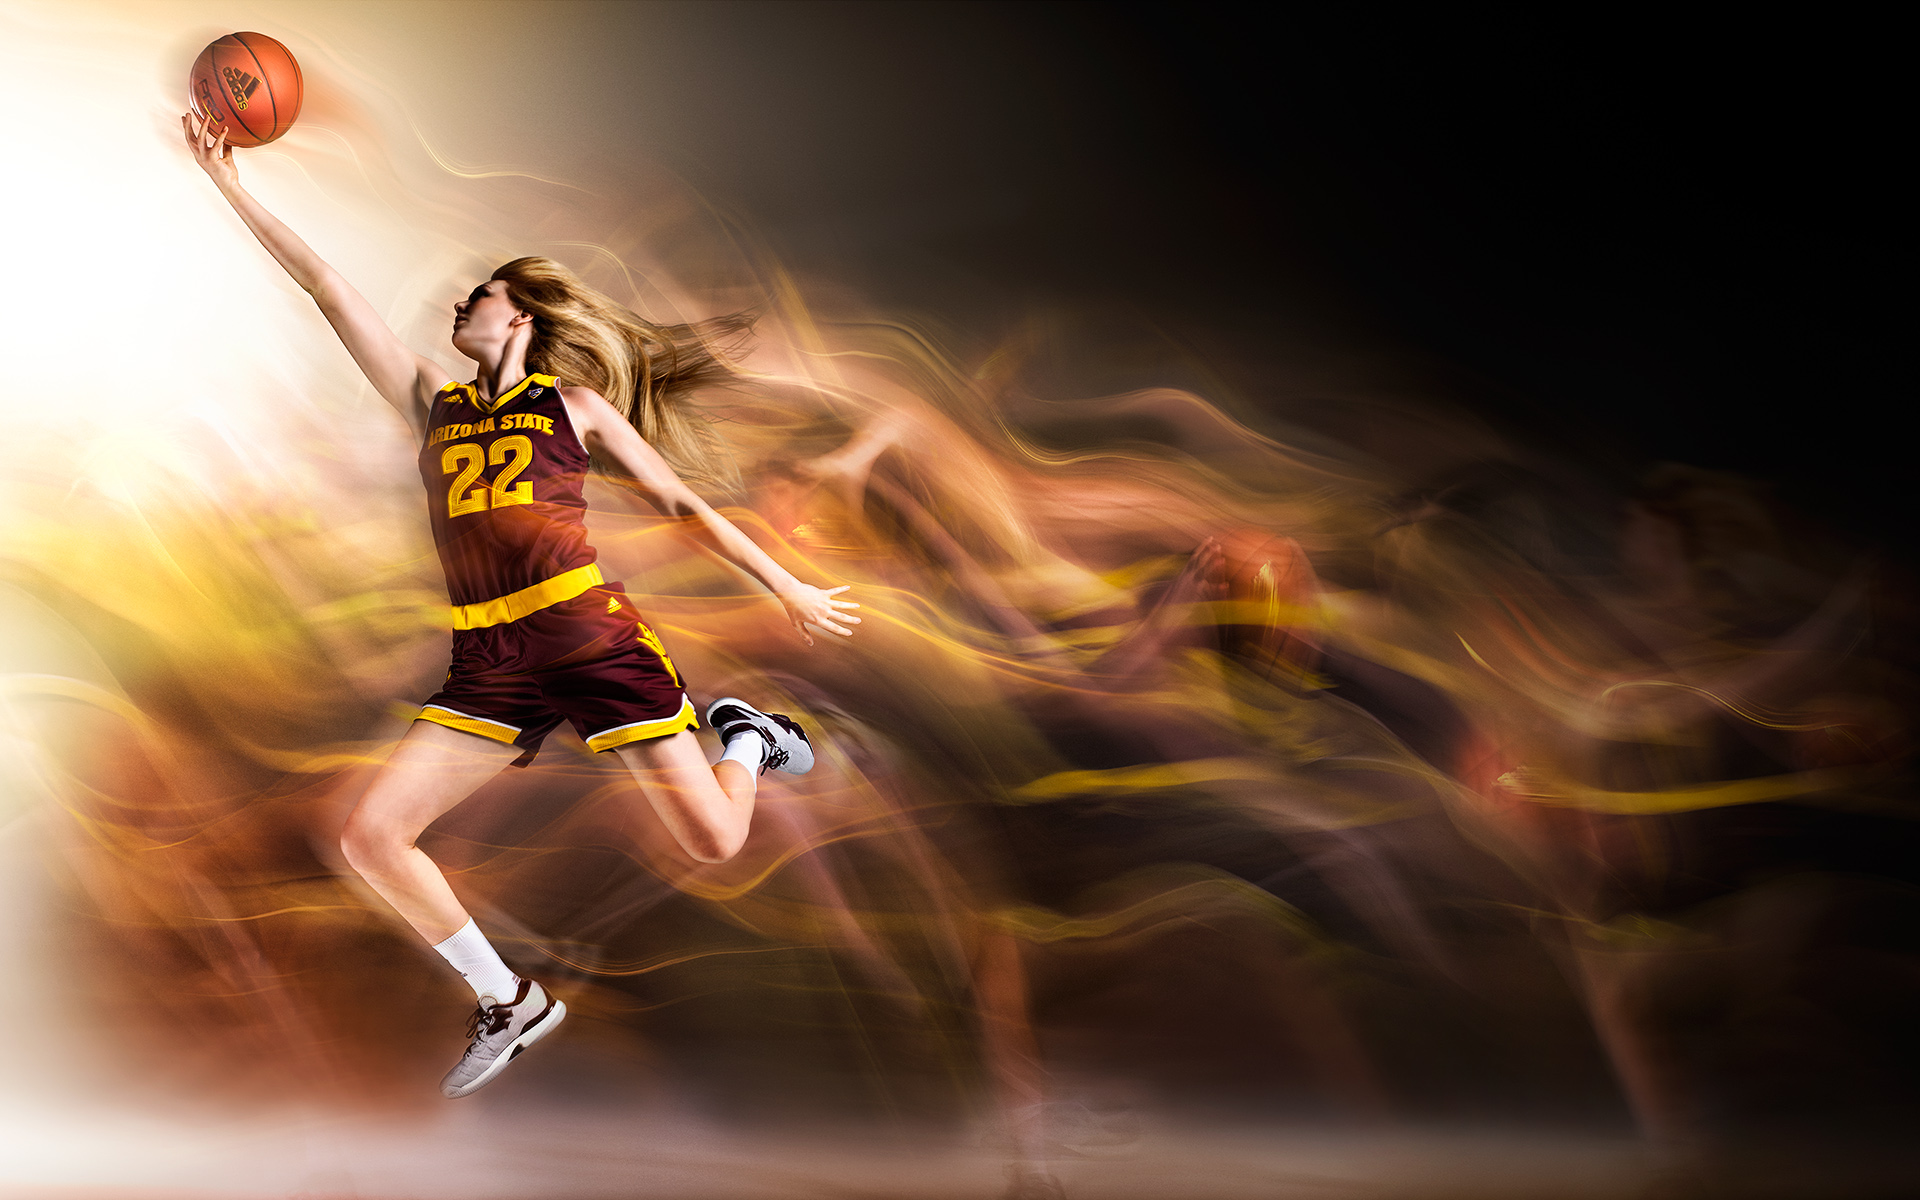 Conceptual Sports Photographer Blair Bunting